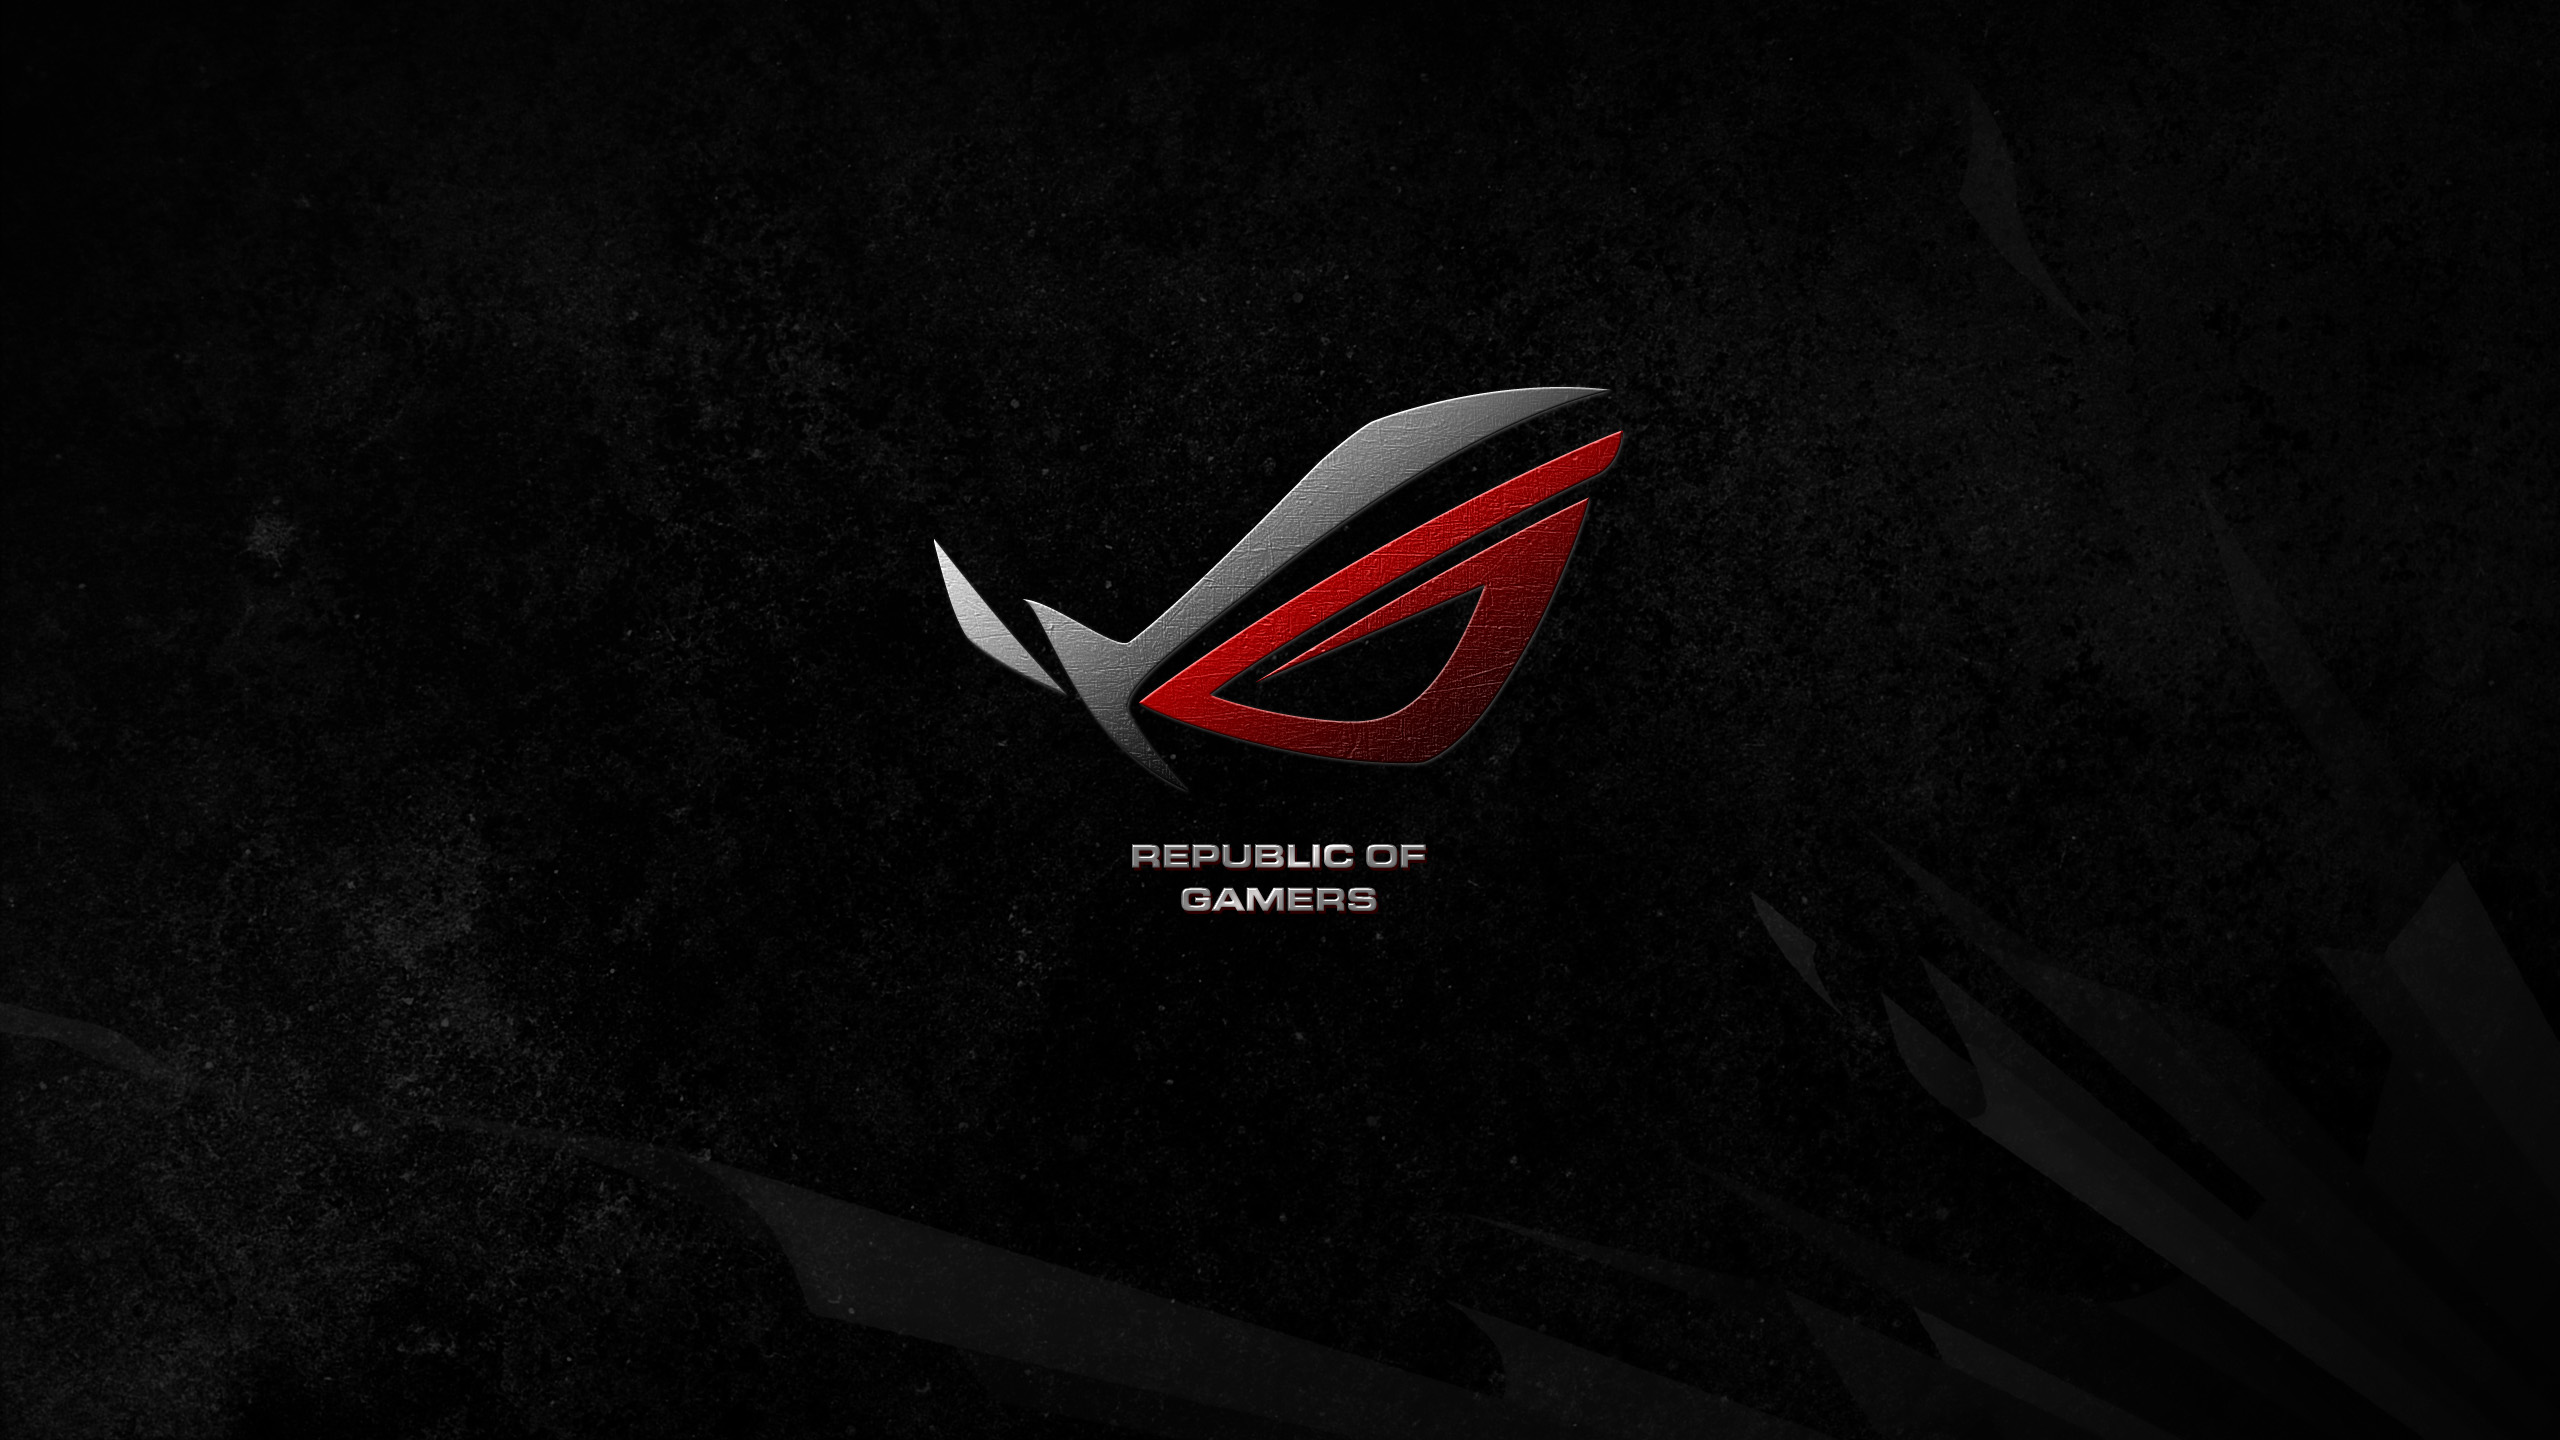 3709174 Asus Rog Wallpaper 2560x1440